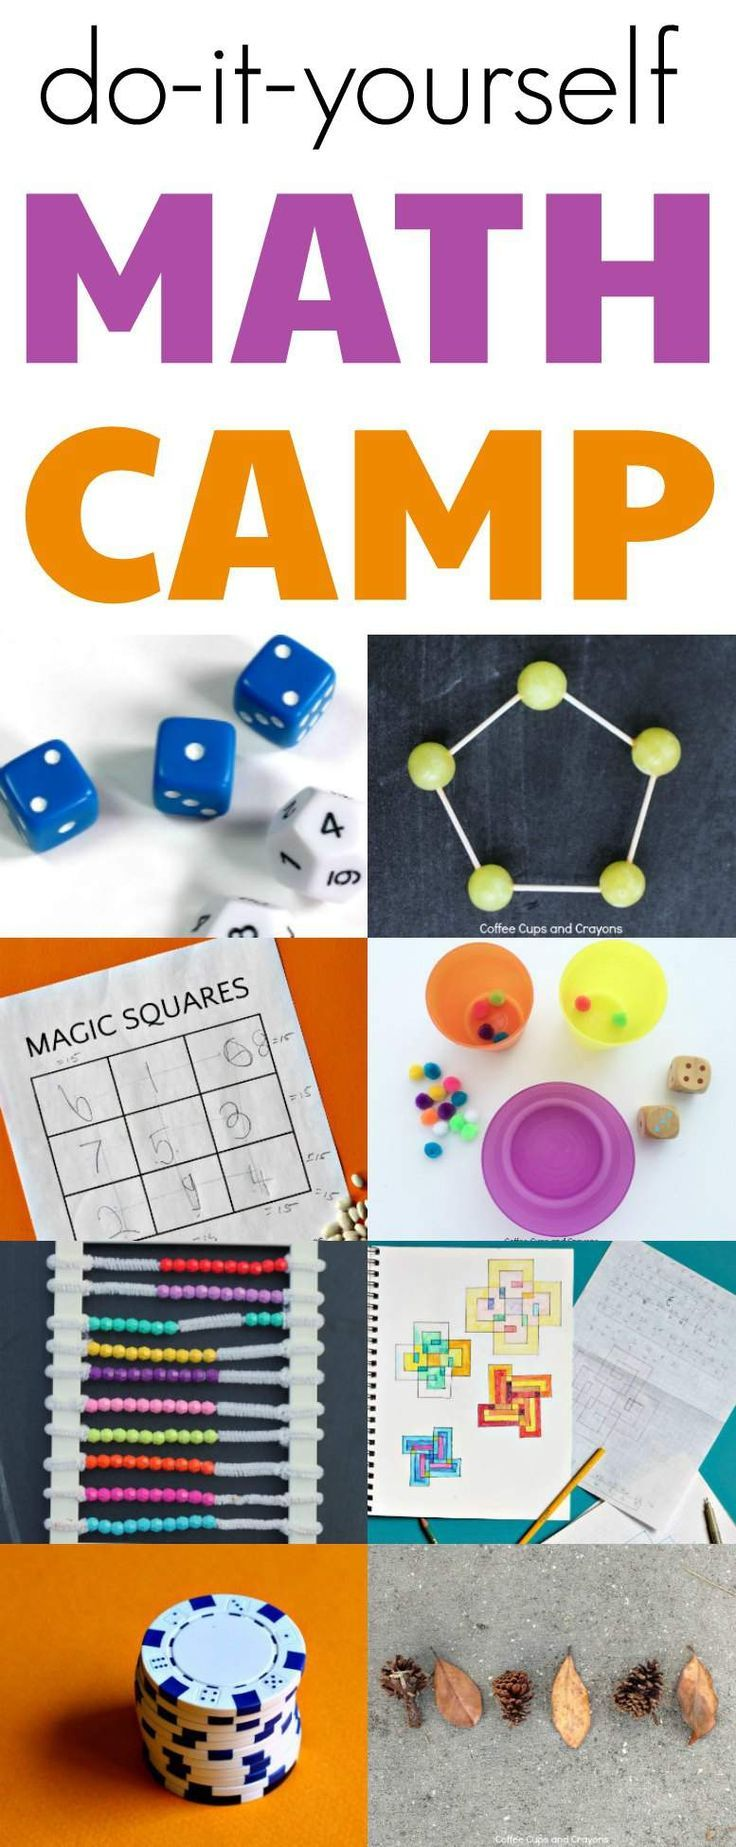 Complete activity lesson plans for a budget friendly fun diy summer math camp for kids